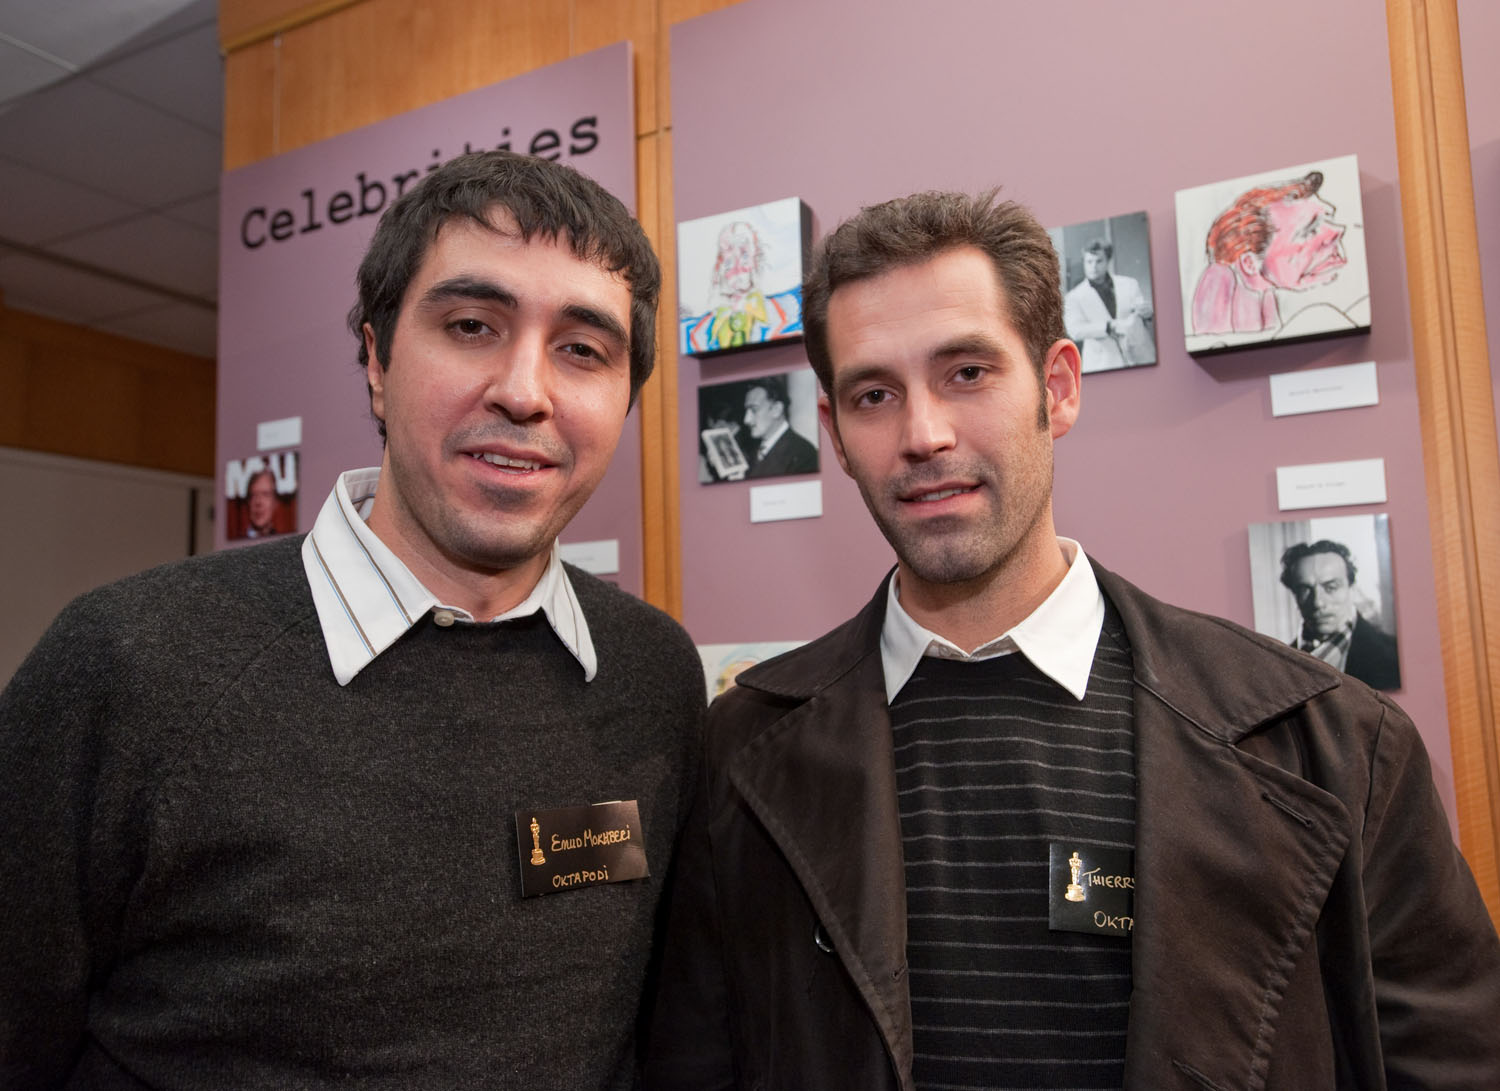 Emud Mokhberi, Thierry Marchand